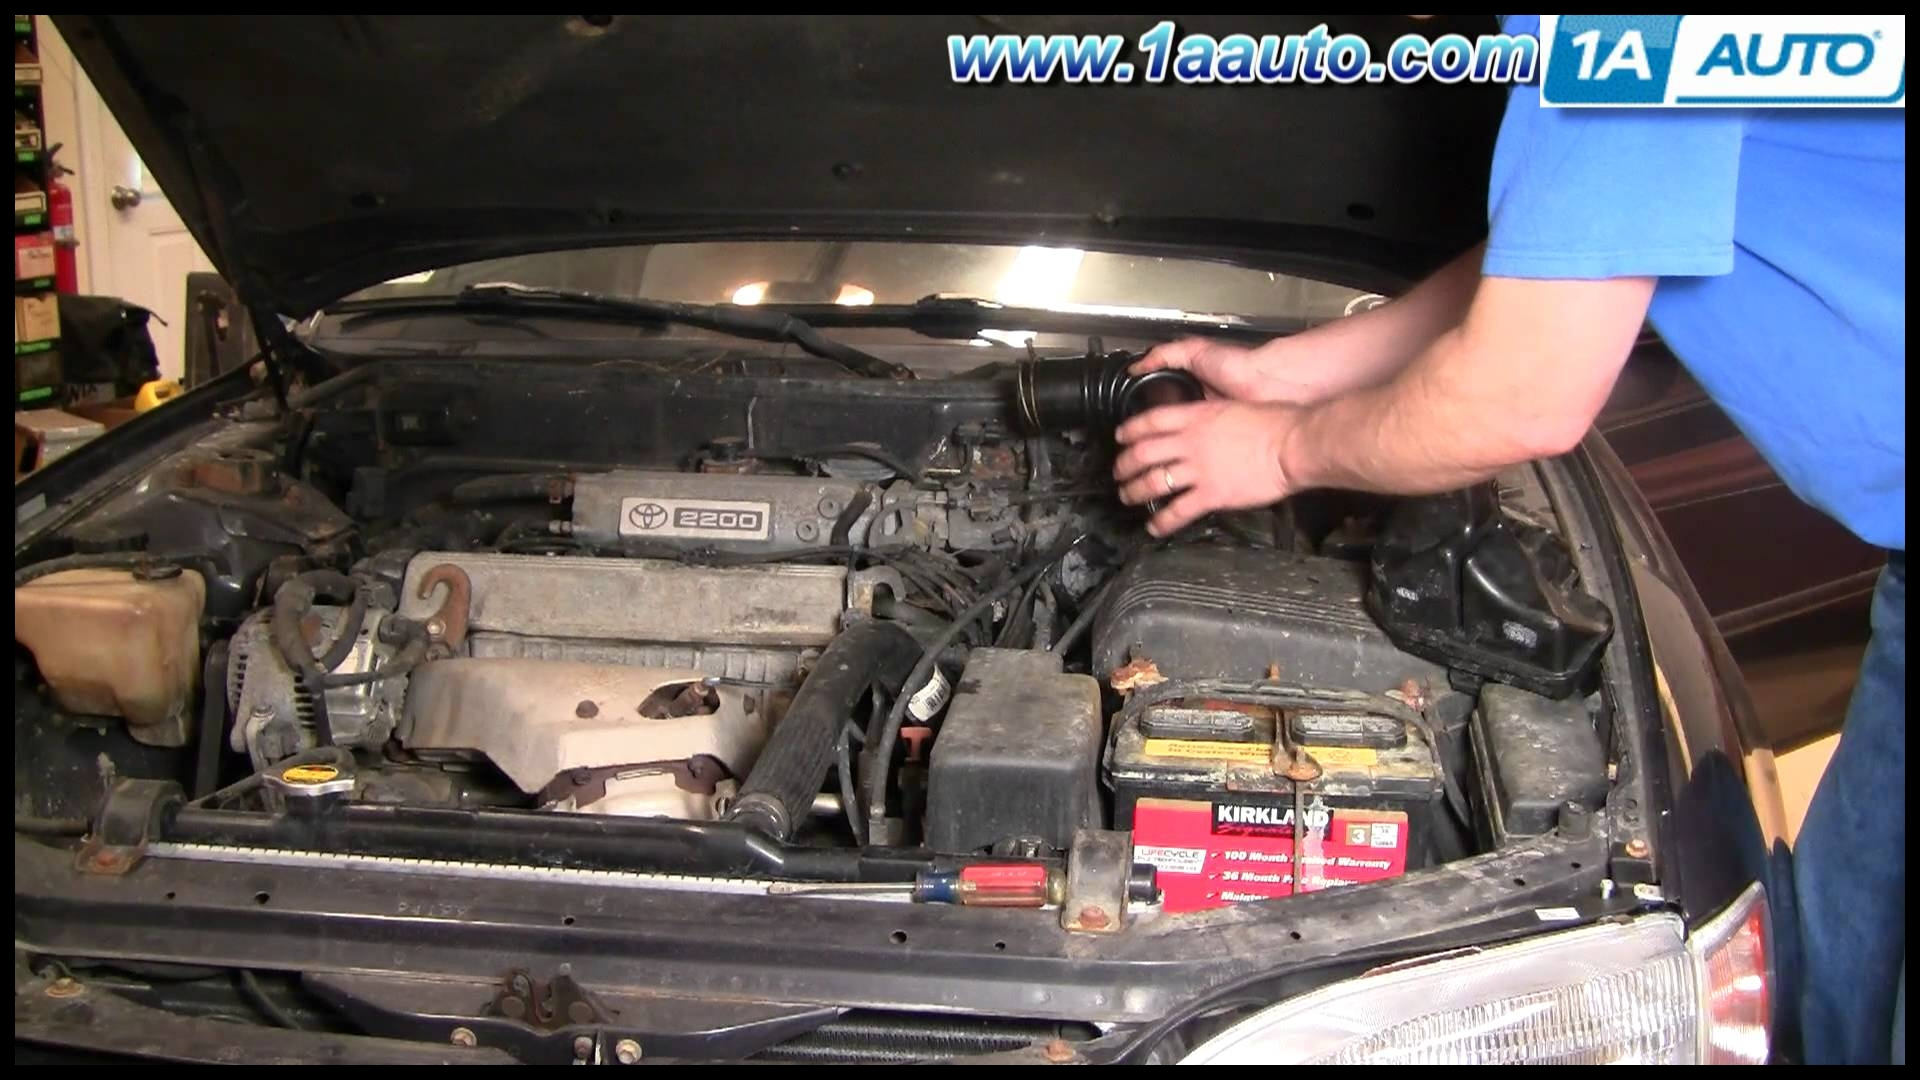 How To Install Replace Engine Air Intake Hose Toyota Camry 2 2L 95 96 1AAuto